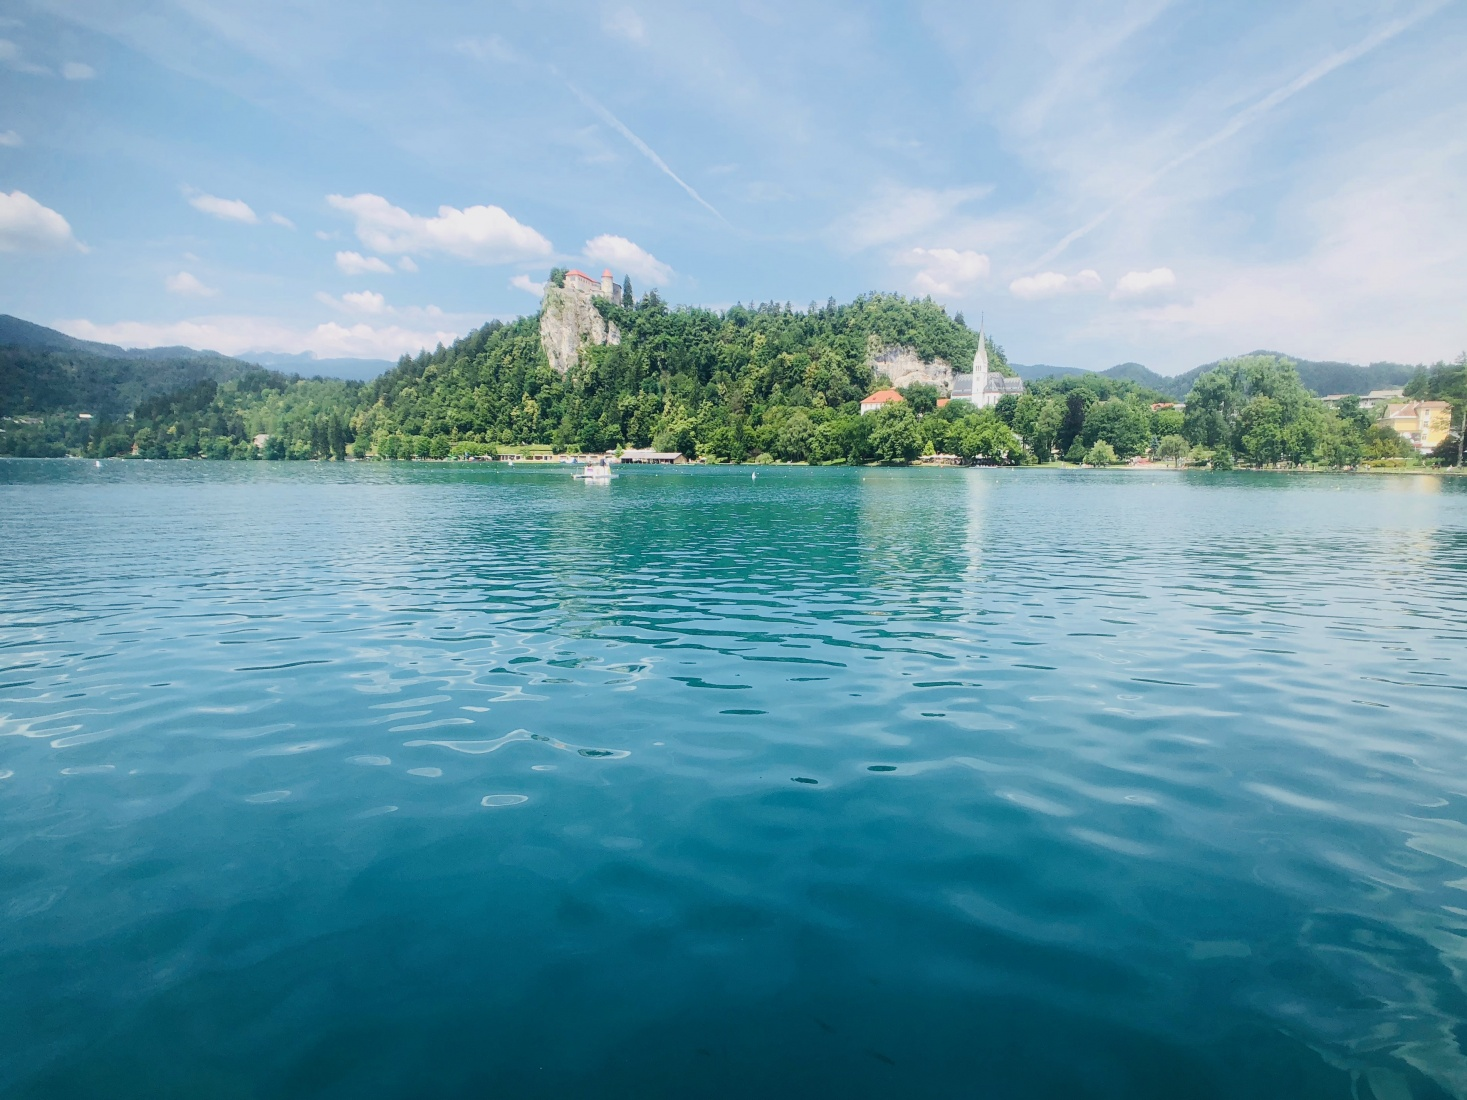 View of Bled Castle over the blue green waters of Lake Bled, Slovenia.